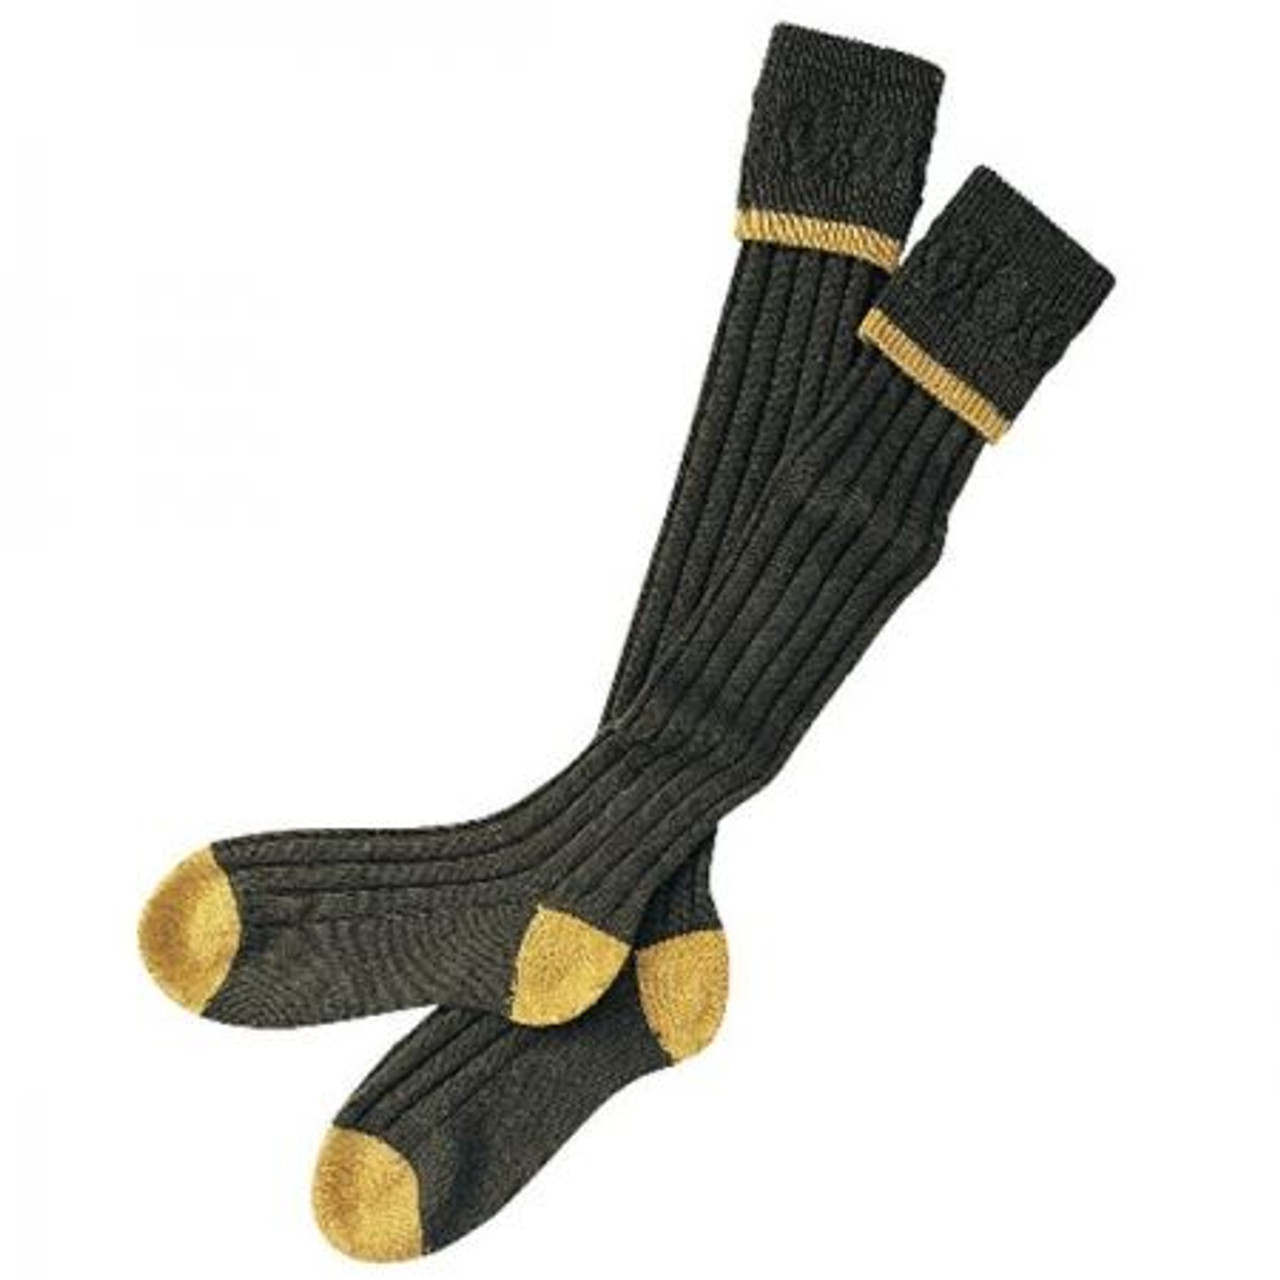 Barbour Socks Contrast Stocking Gun Socks